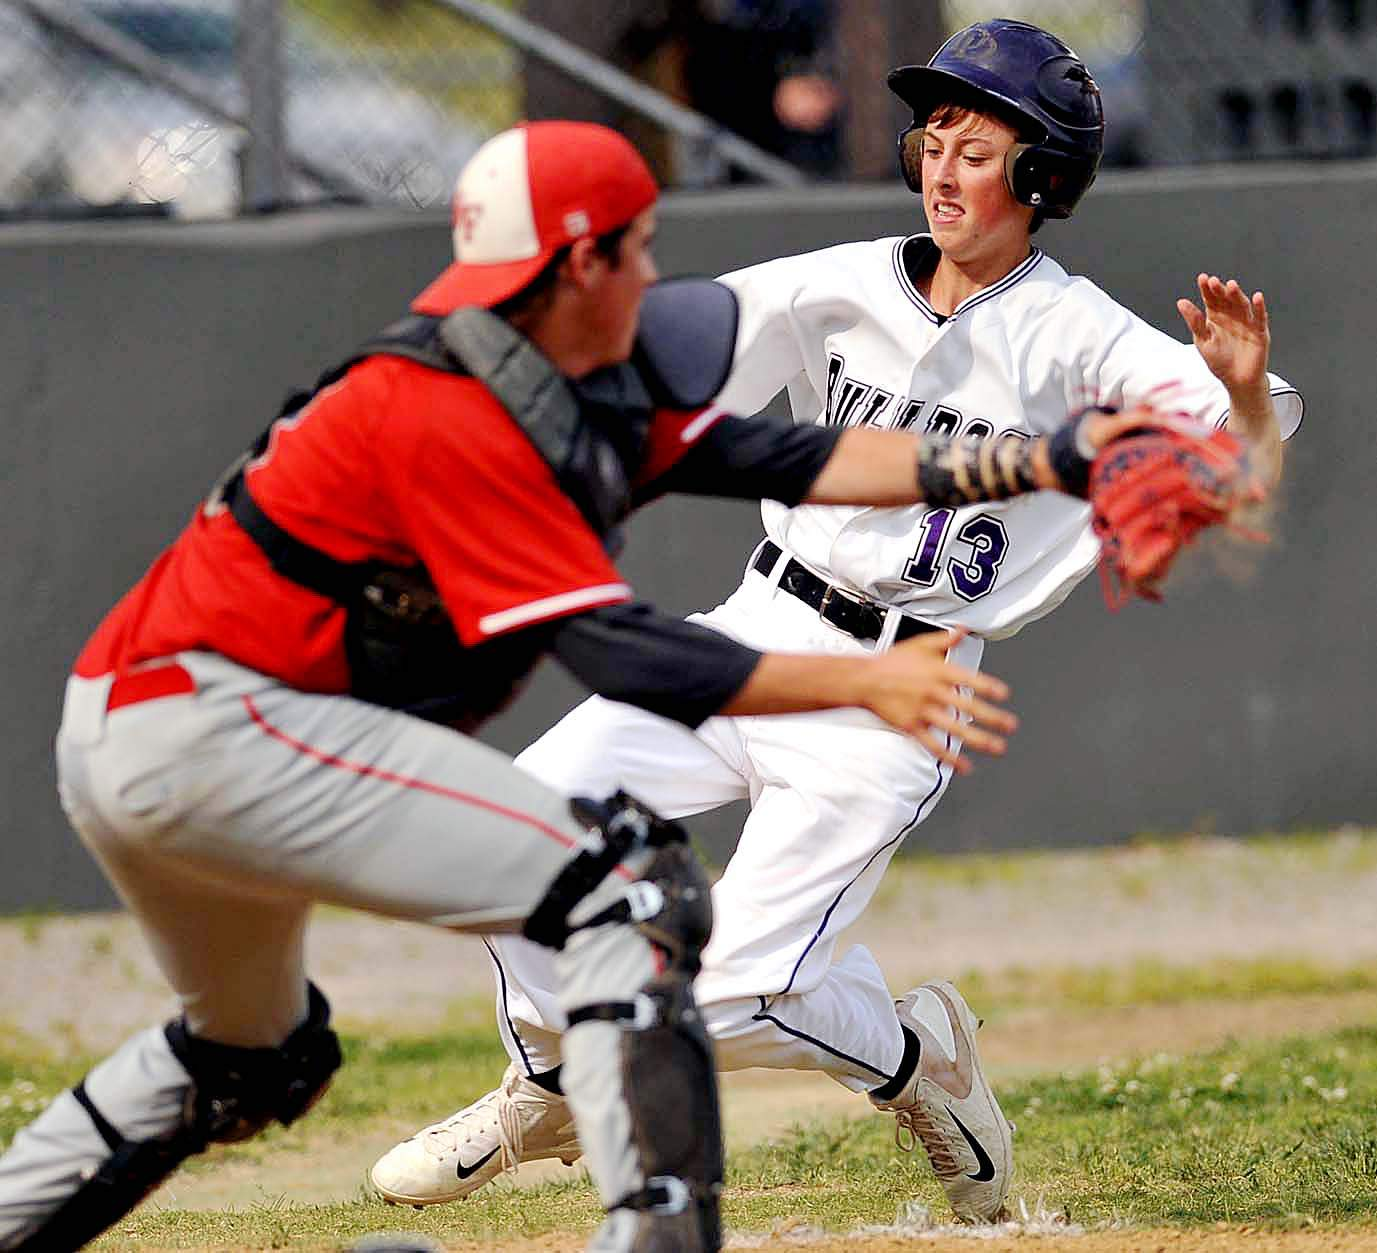 Harrisburg's Connor Phalin slides past the West Frankfort catcher for a score in the Bulldogs' 8-2 IHSA Class 2A Regional semifinal win over the Redbirds. Harrisburg will now face Benton Saturday in the title game.